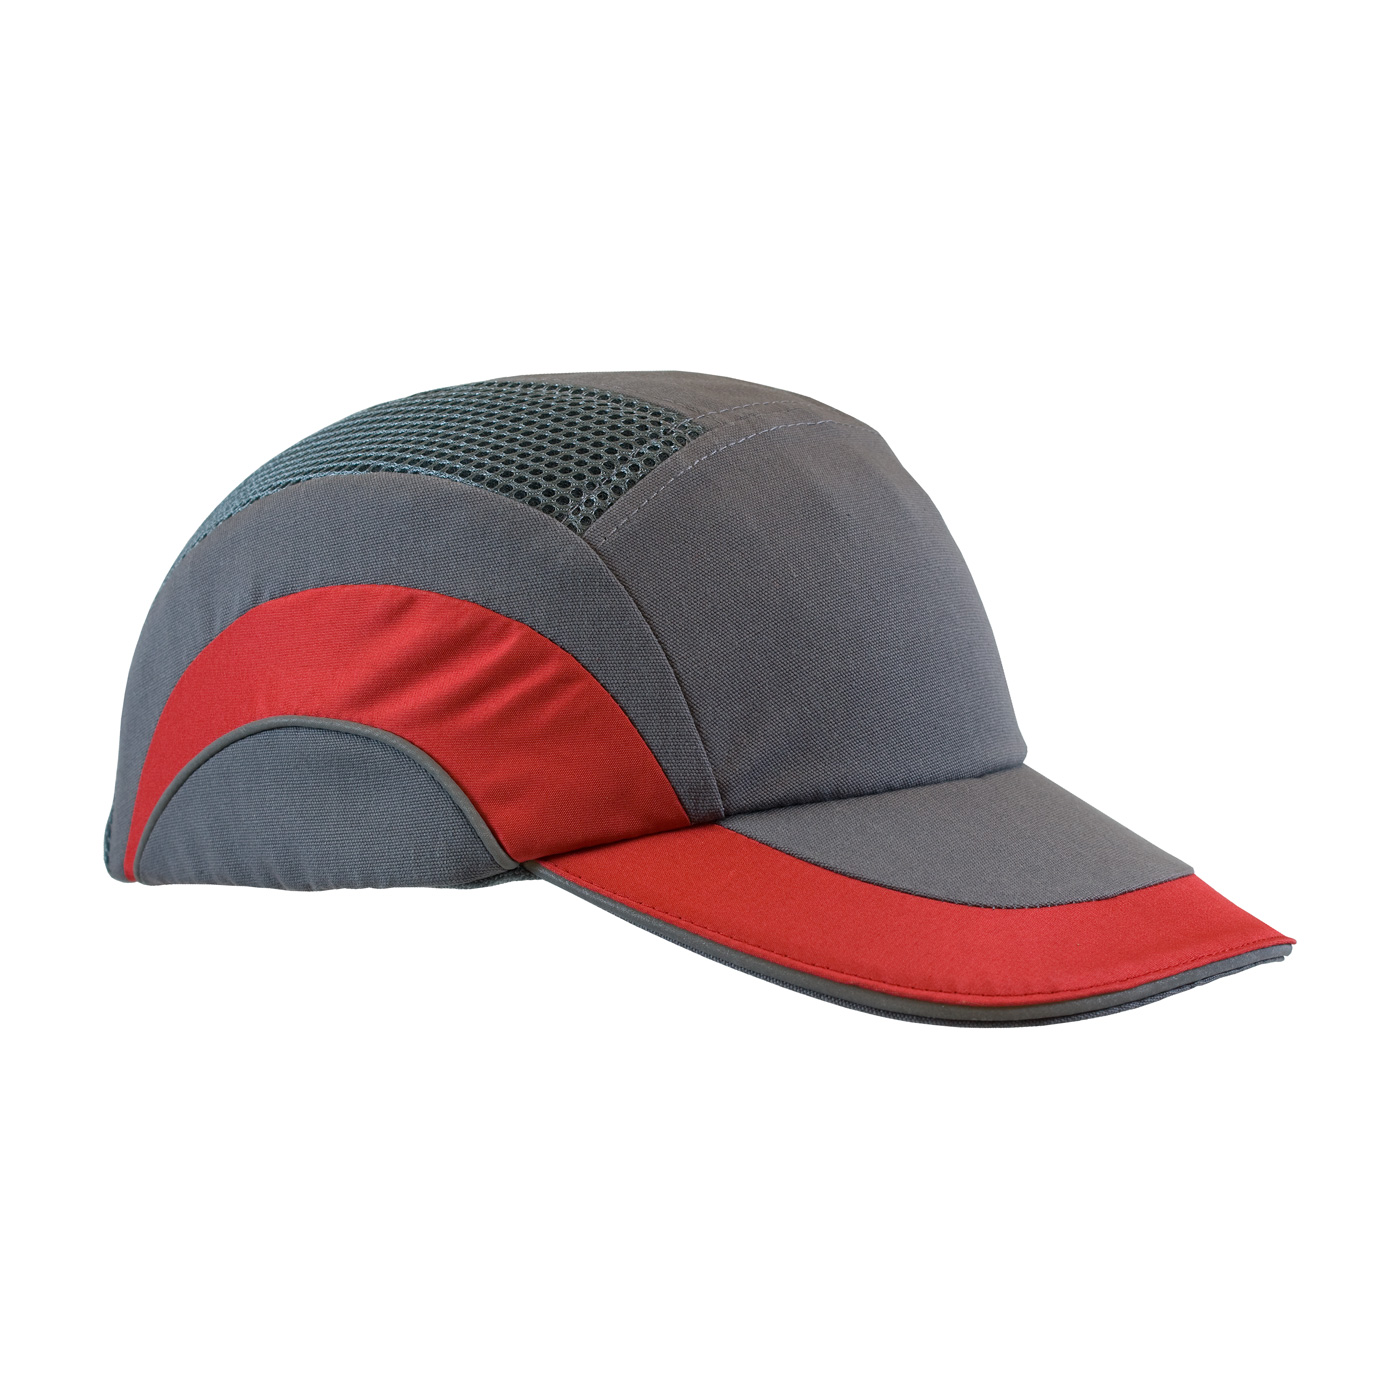 Baseball Style Bump Cap with HDPE Protective Liner and Adjustable Back, Red, OS